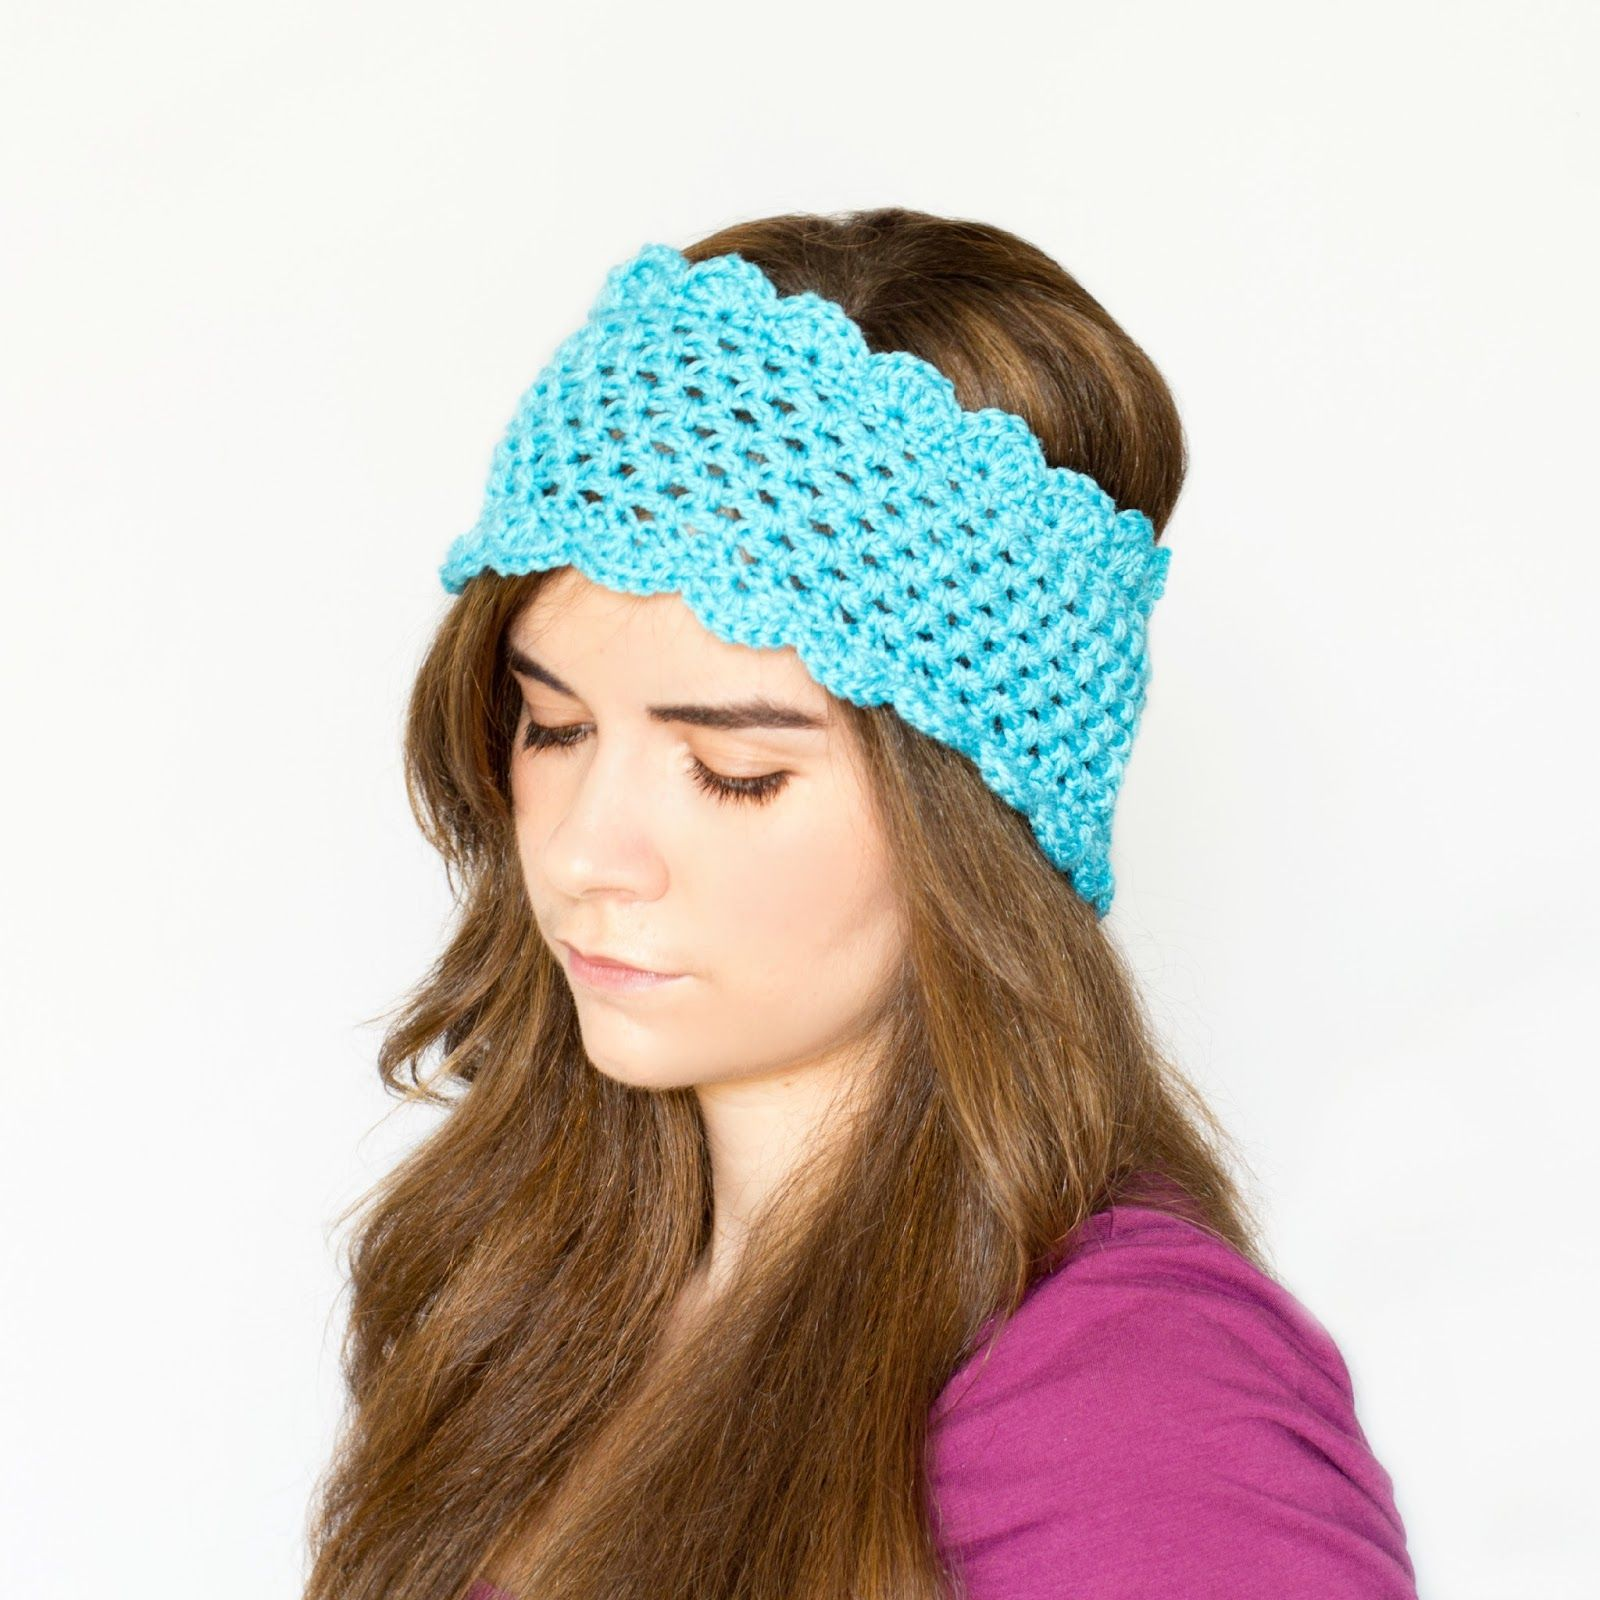 Dainty Scalloped Ear Warmer Crochet Pattern via Hopeful Honey ...